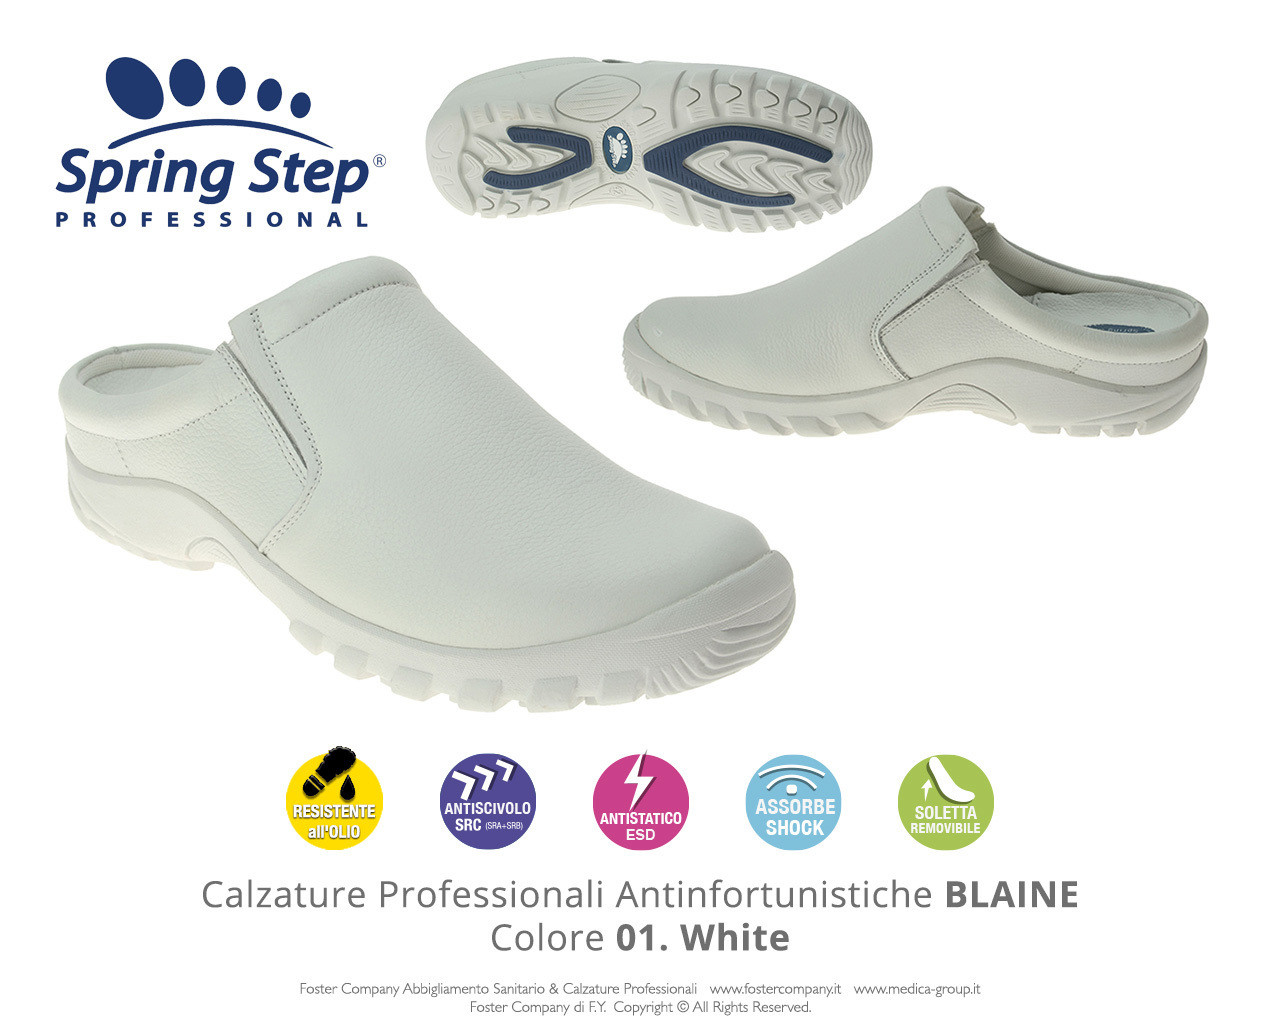 Calzature Professionali Spring Step BLAINE Colore 01. White